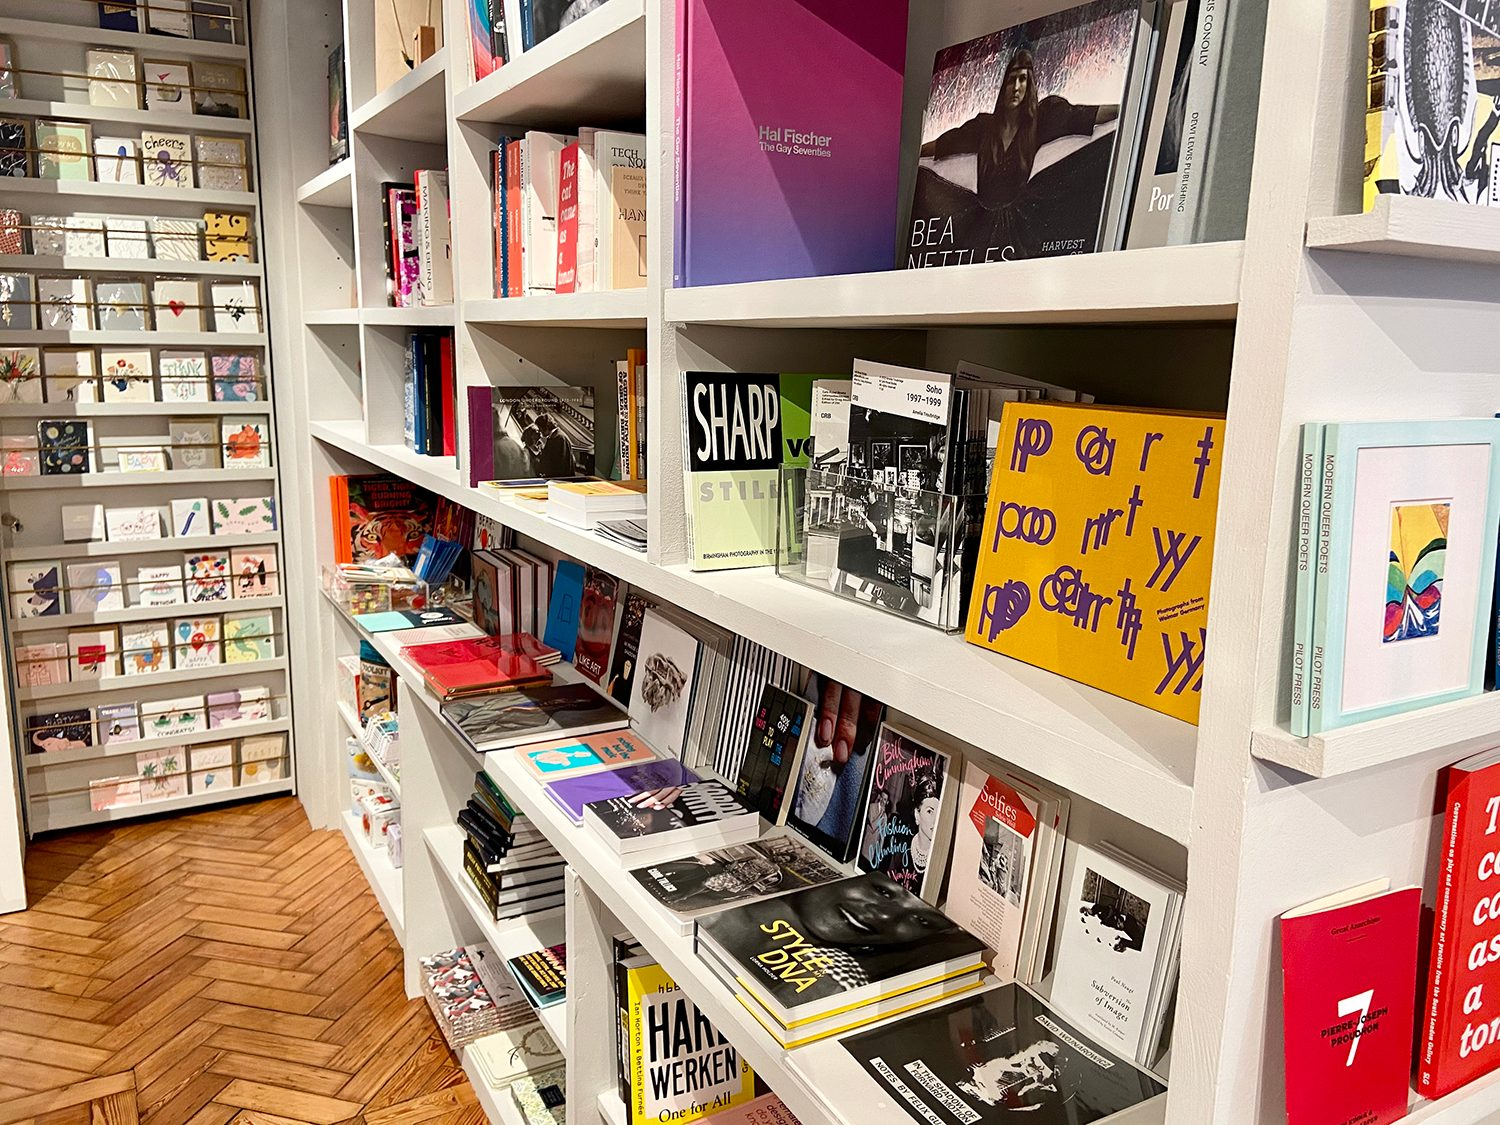 The SLG Bookshop shelves with lots of brightly coloured books